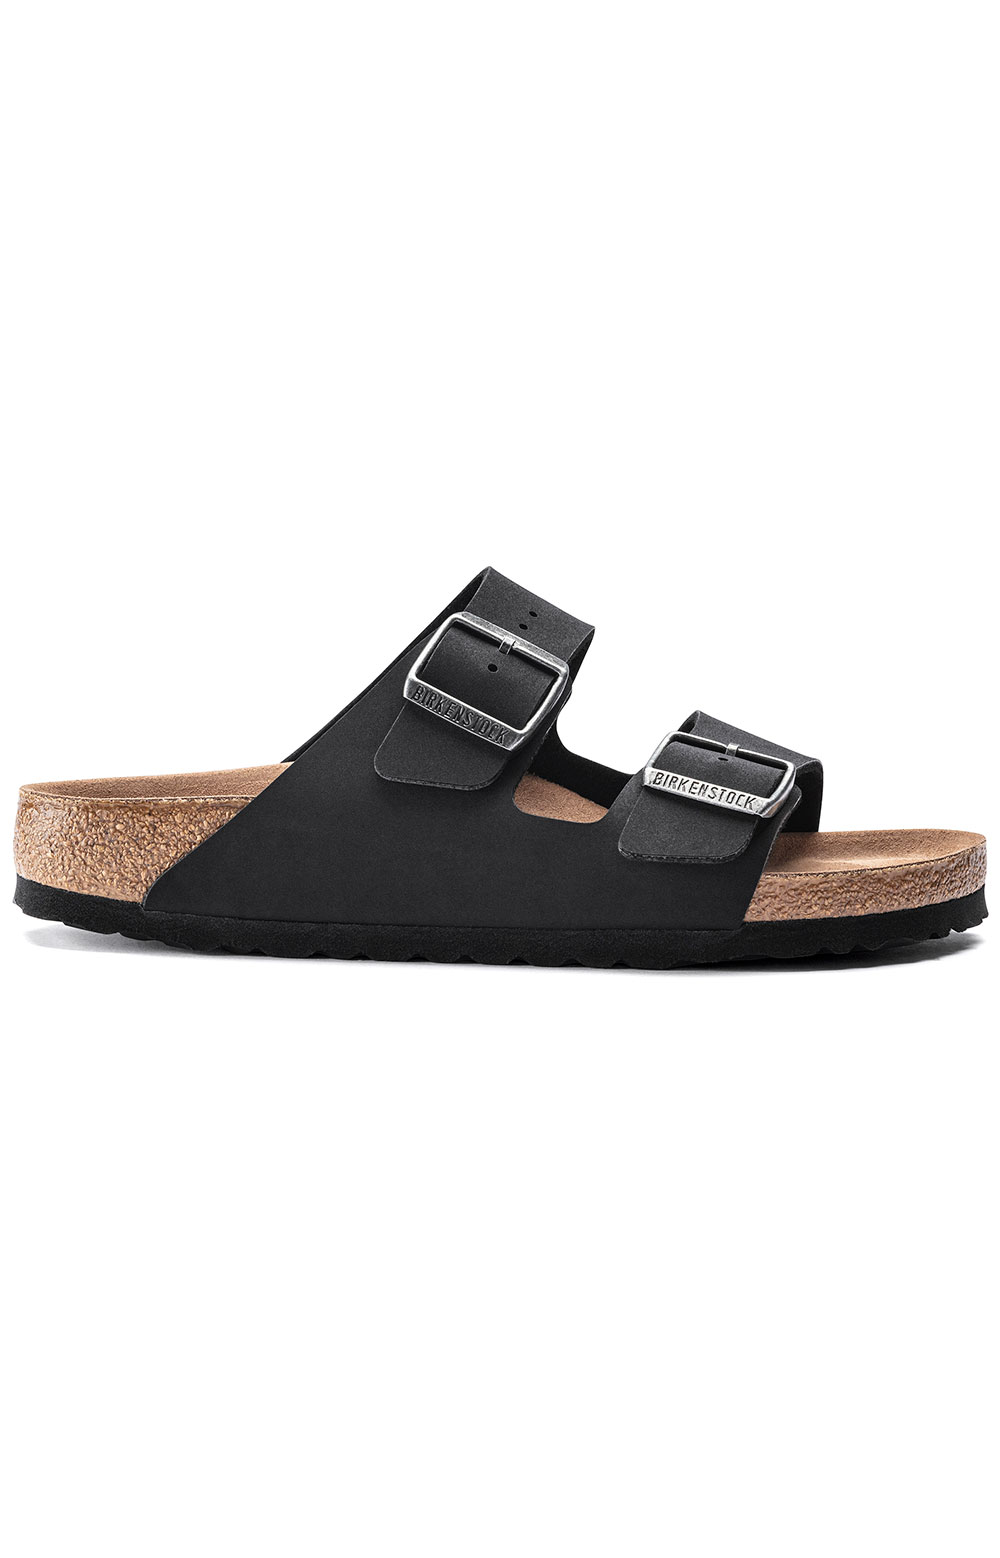 (1019115) Arizona Vegan Sandals - Black 3